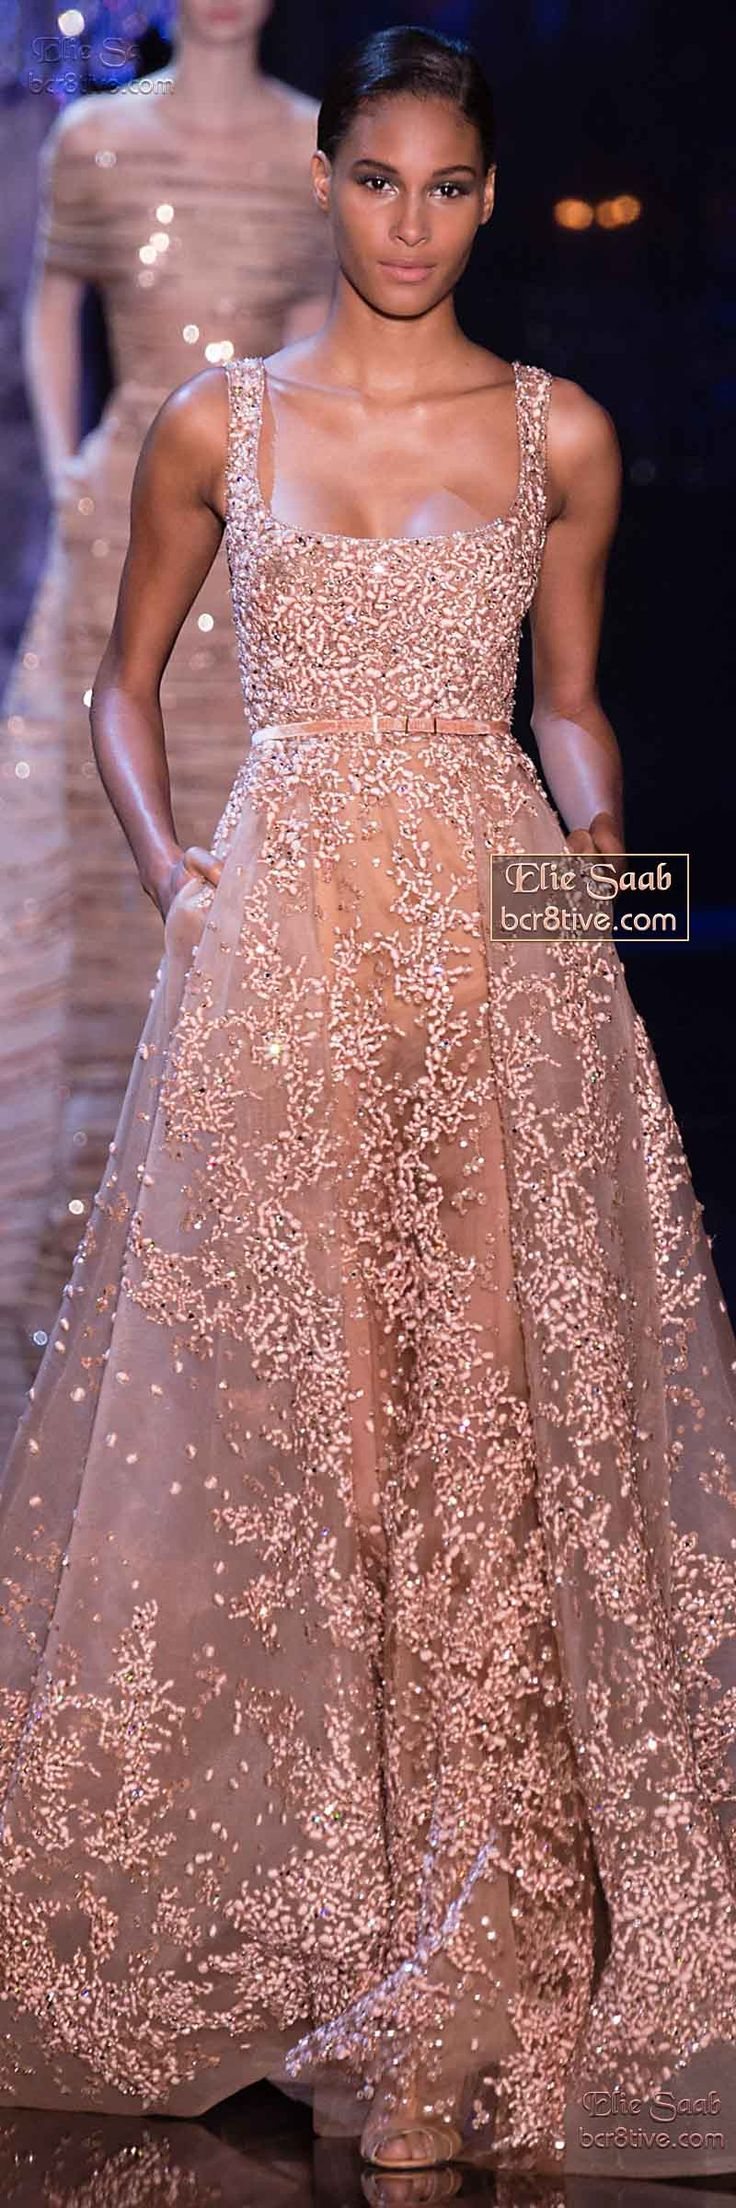 fa595f7603ac55c8810d21e5a07eb634--fall-outfit-ideas-fall-outfits Collection Elie Saab  : Elie Saab Automne Hiver 2014-15 Couture